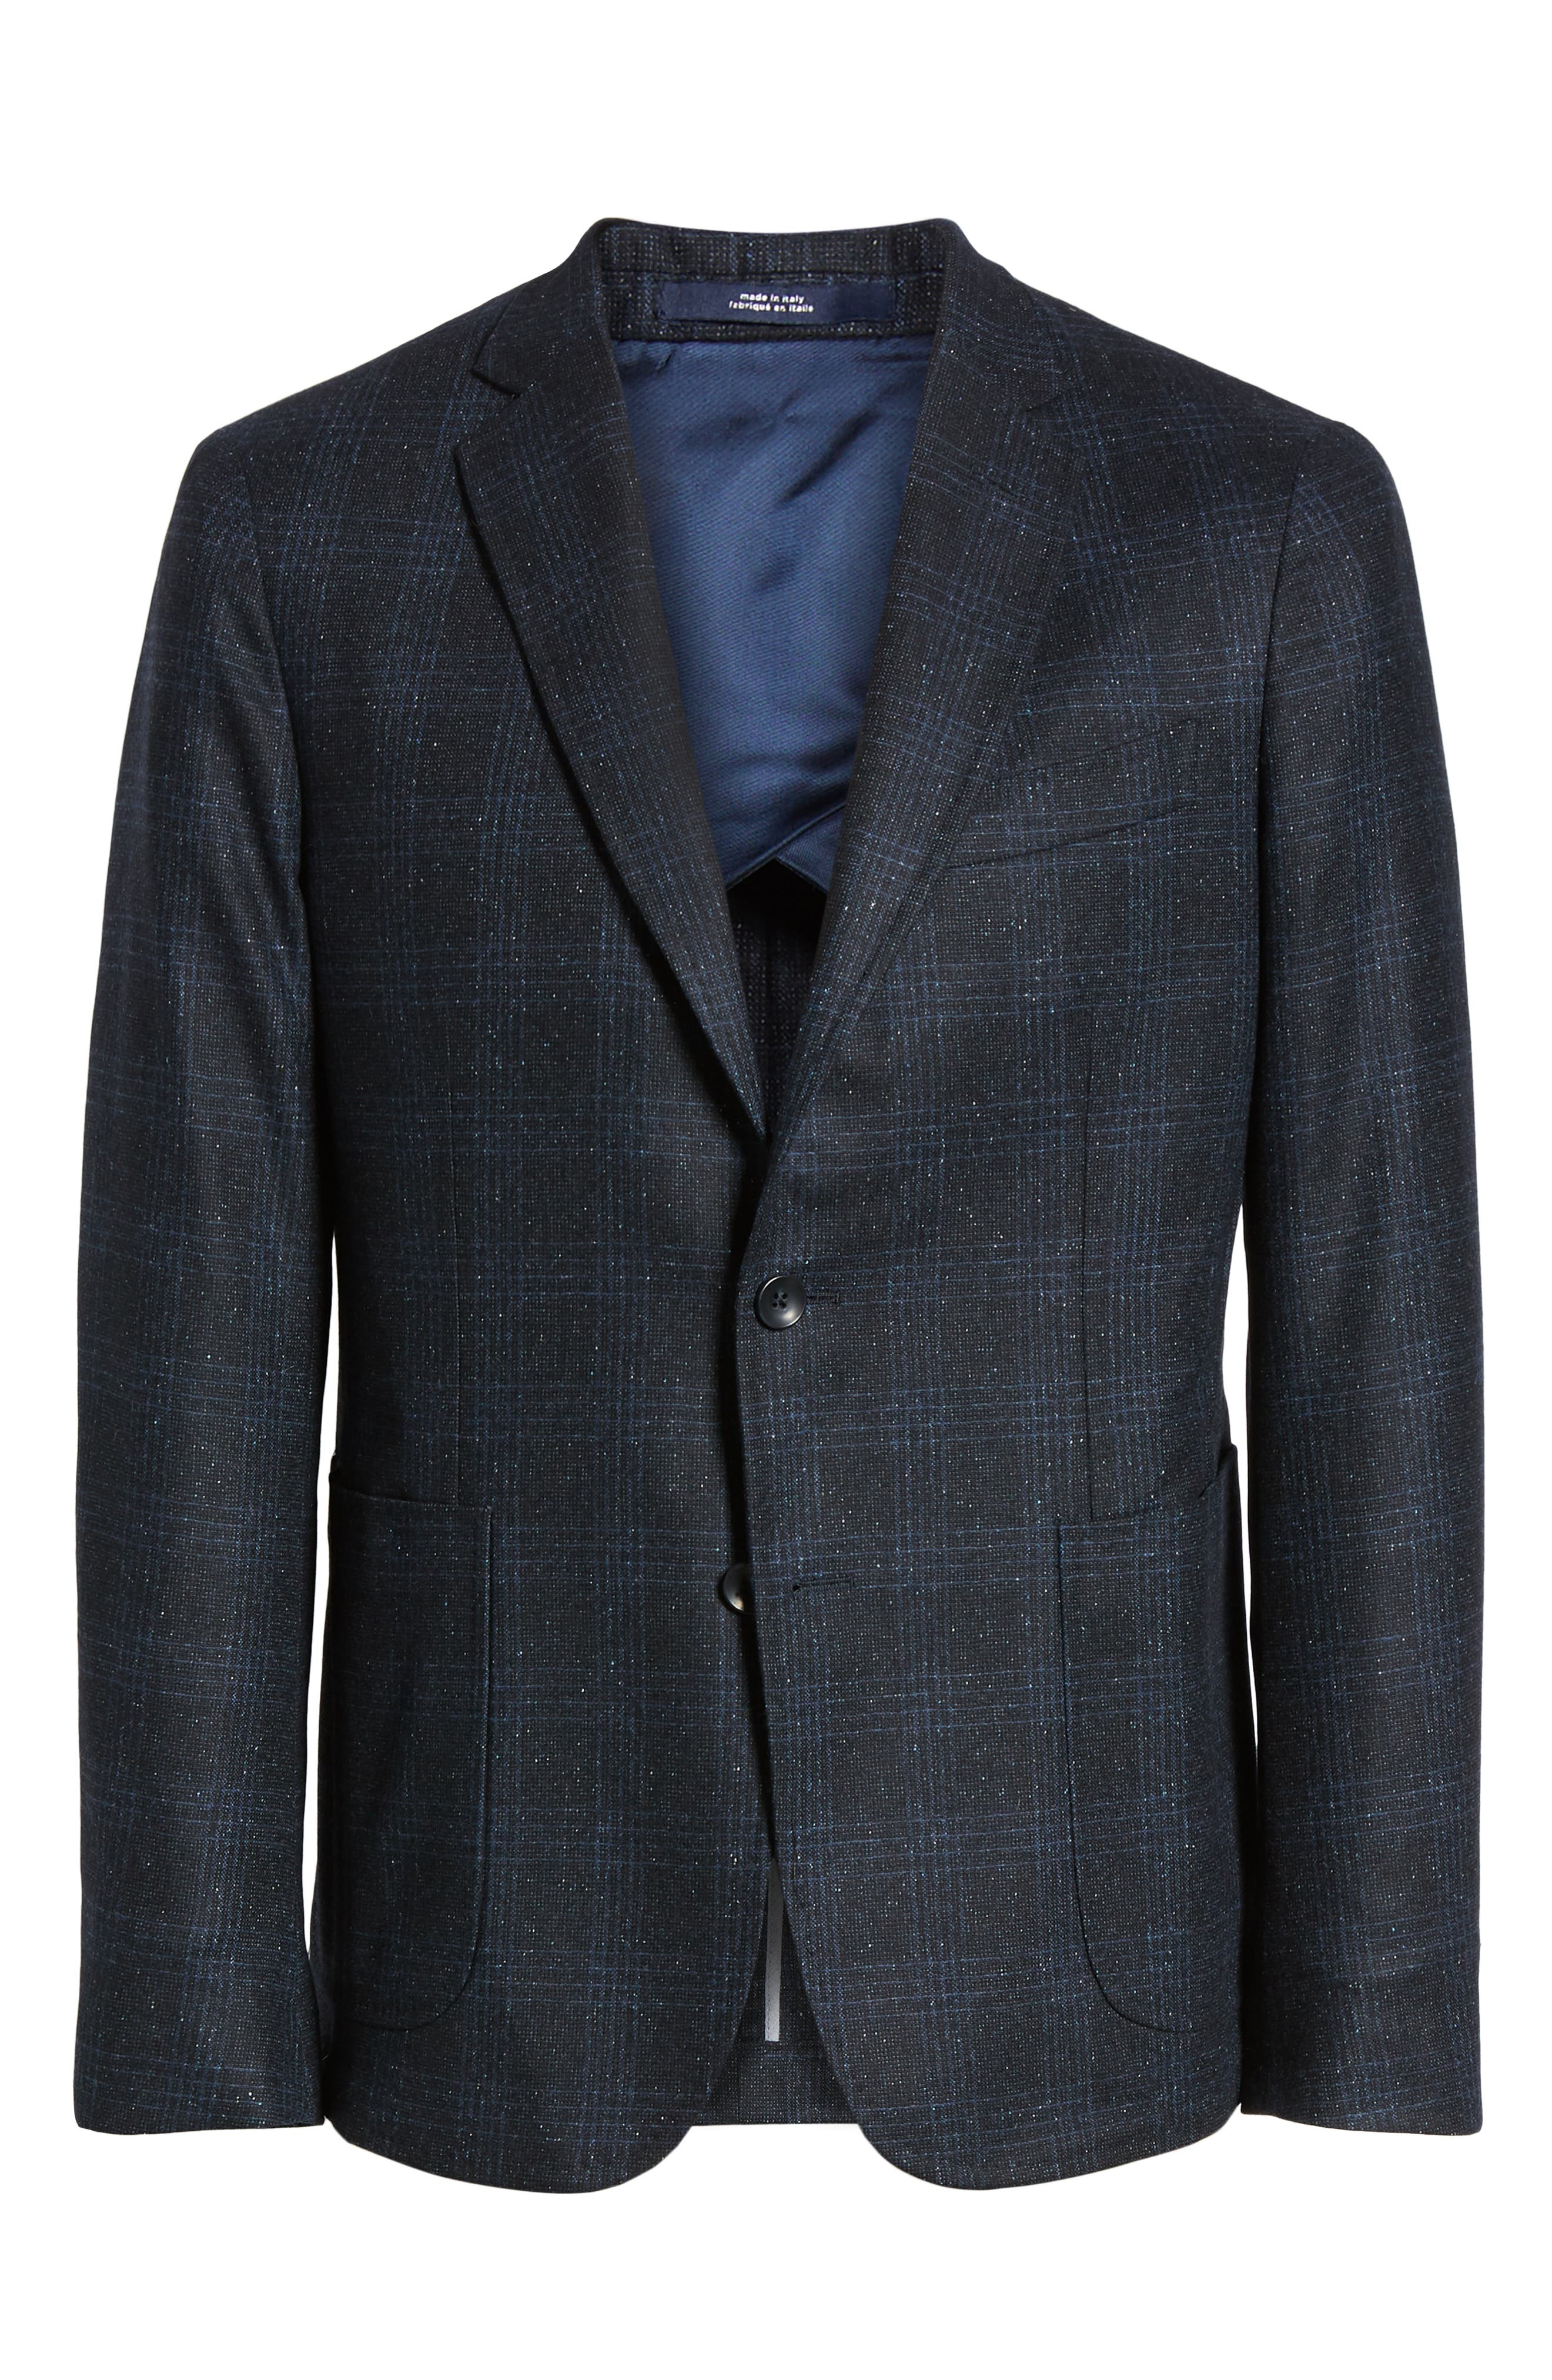 Extra Trim Fit Donegal Plaid Soft Coat,                             Alternate thumbnail 5, color,                             NAVY